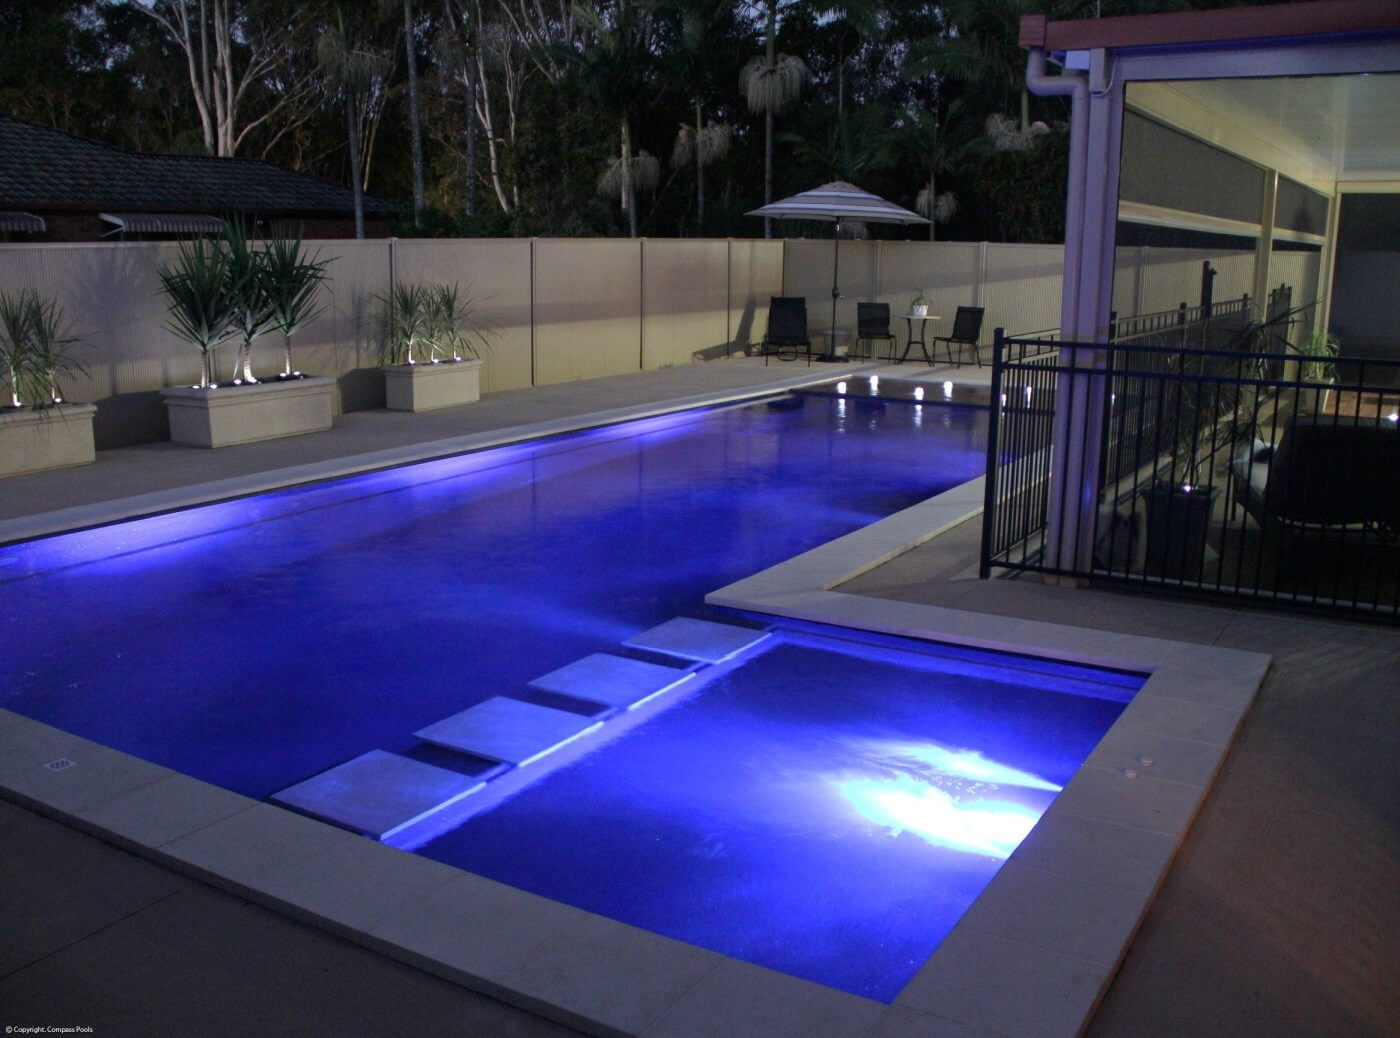 The Best Pool Design Ideas for Your Backyard | Compass ...